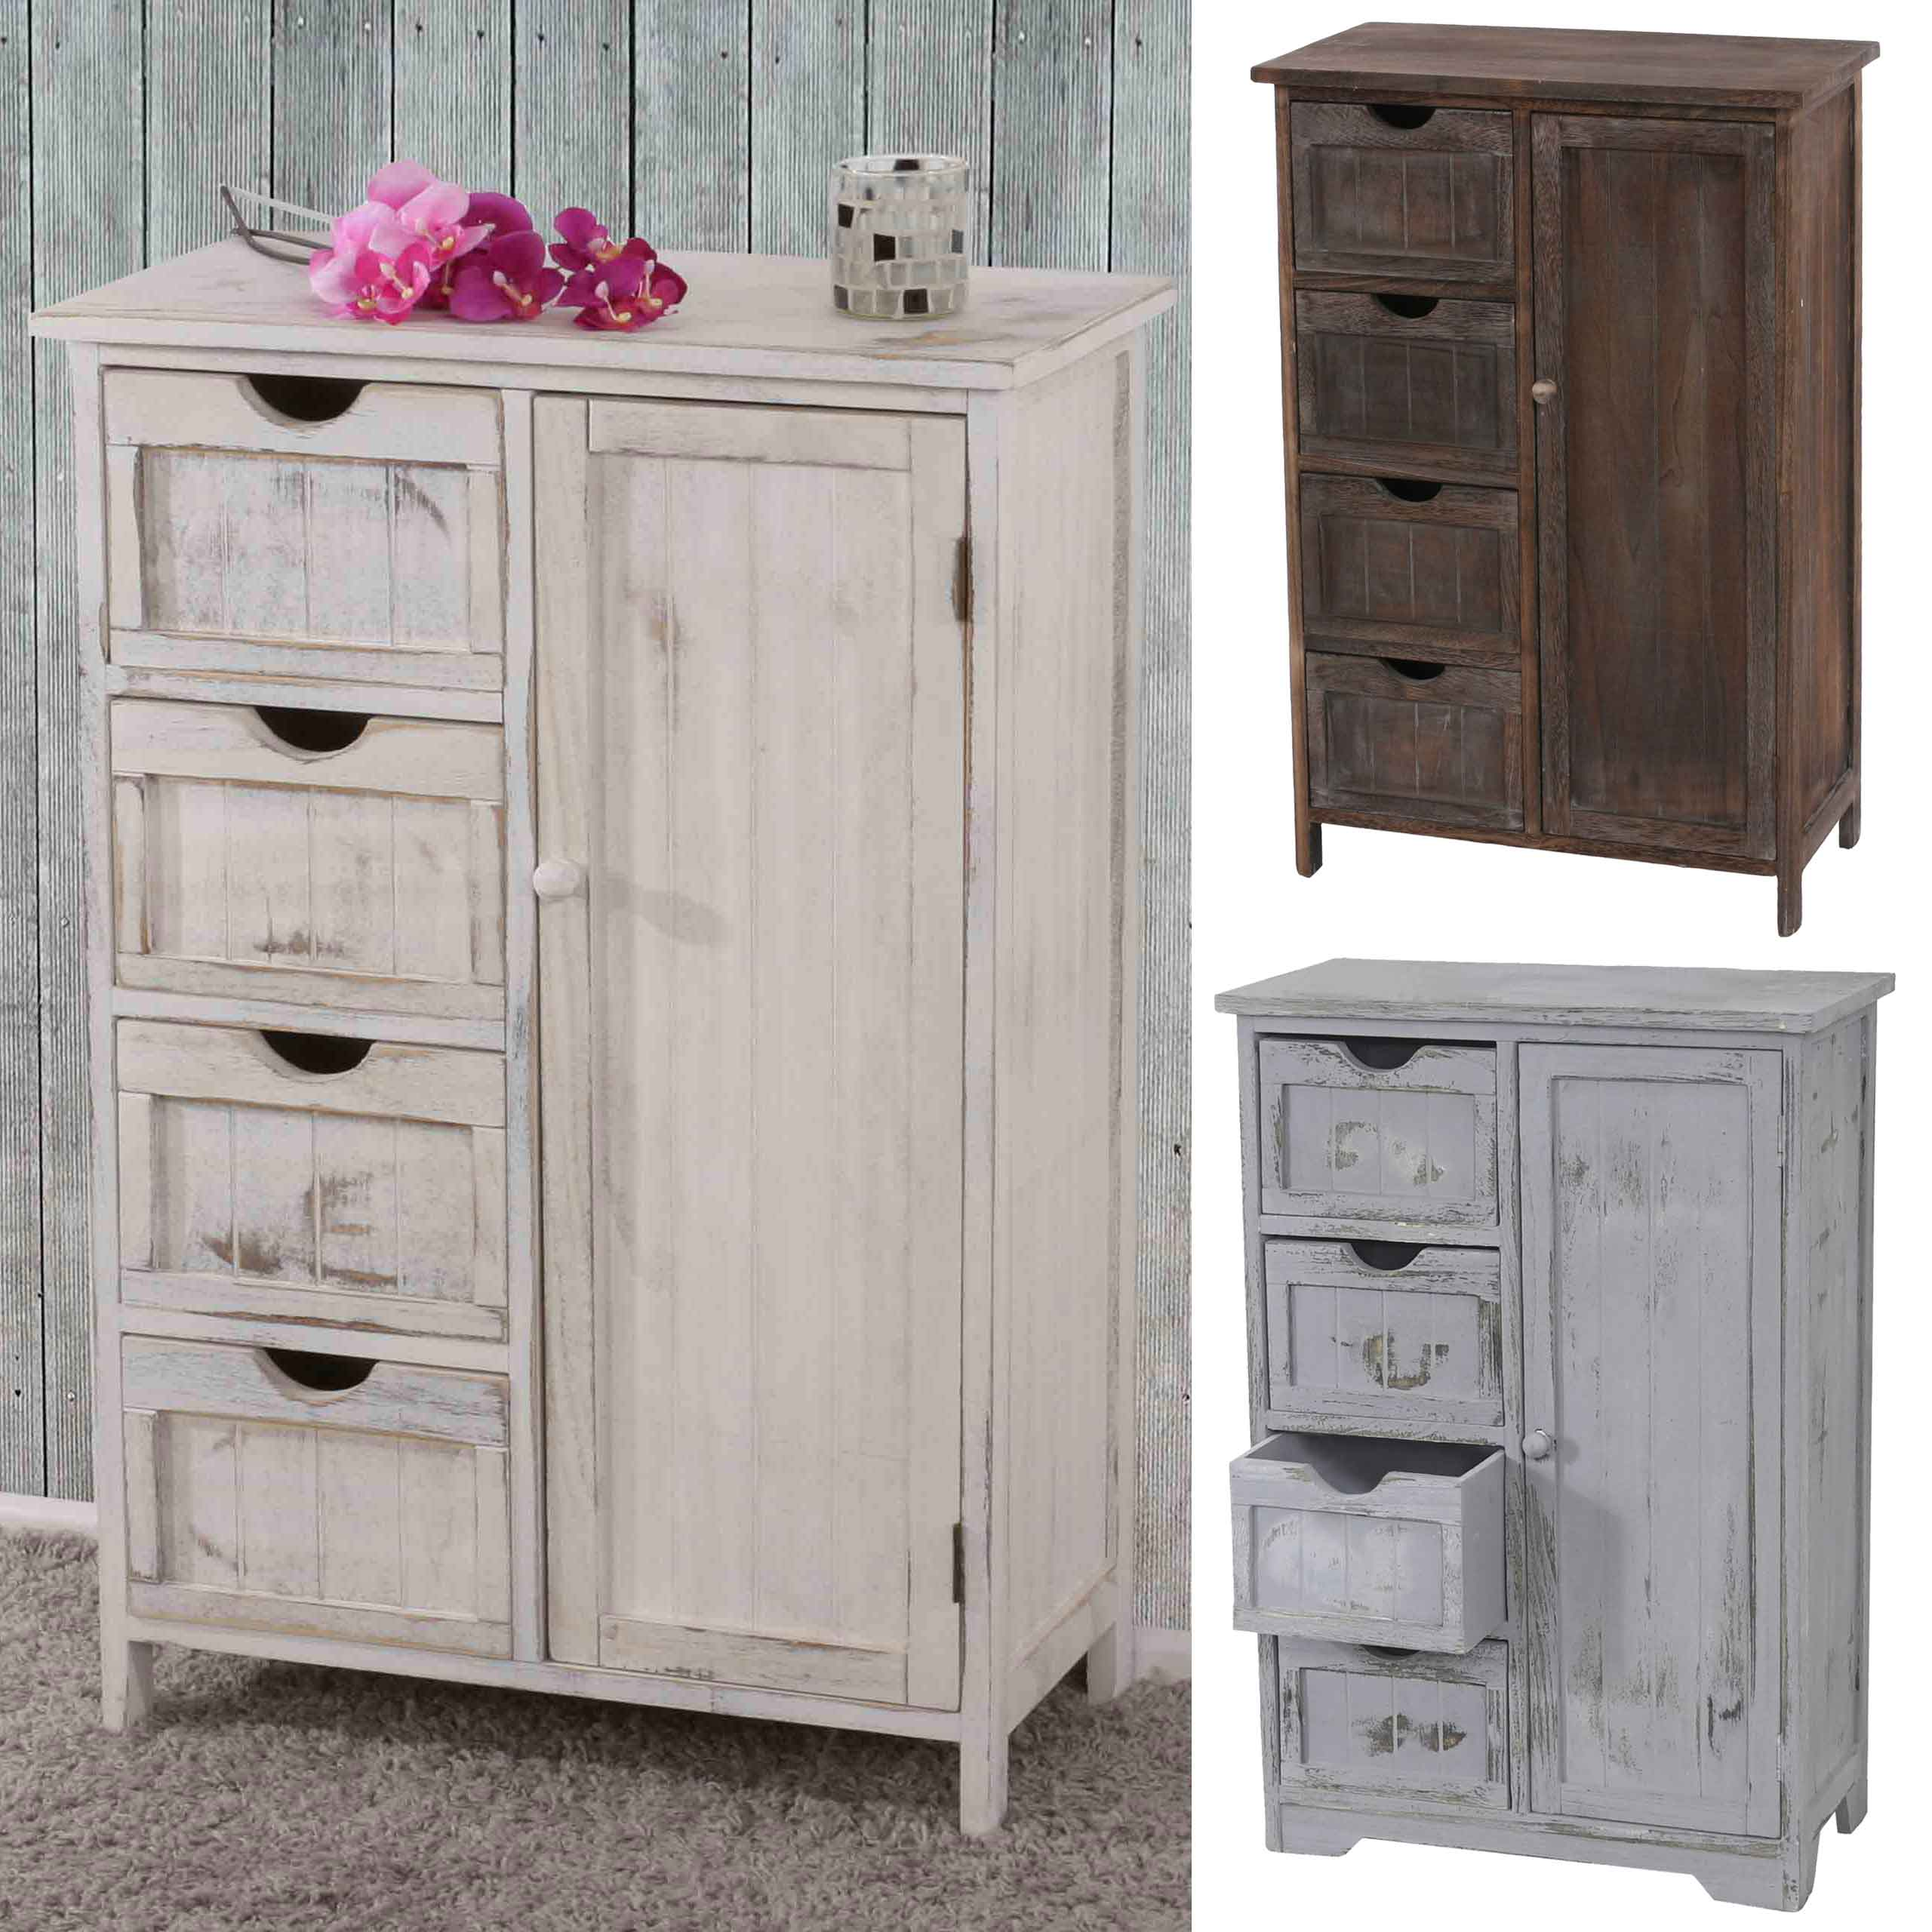 commode armoire 82x55x30cm shabby chic vintage blanc marron gris ebay. Black Bedroom Furniture Sets. Home Design Ideas